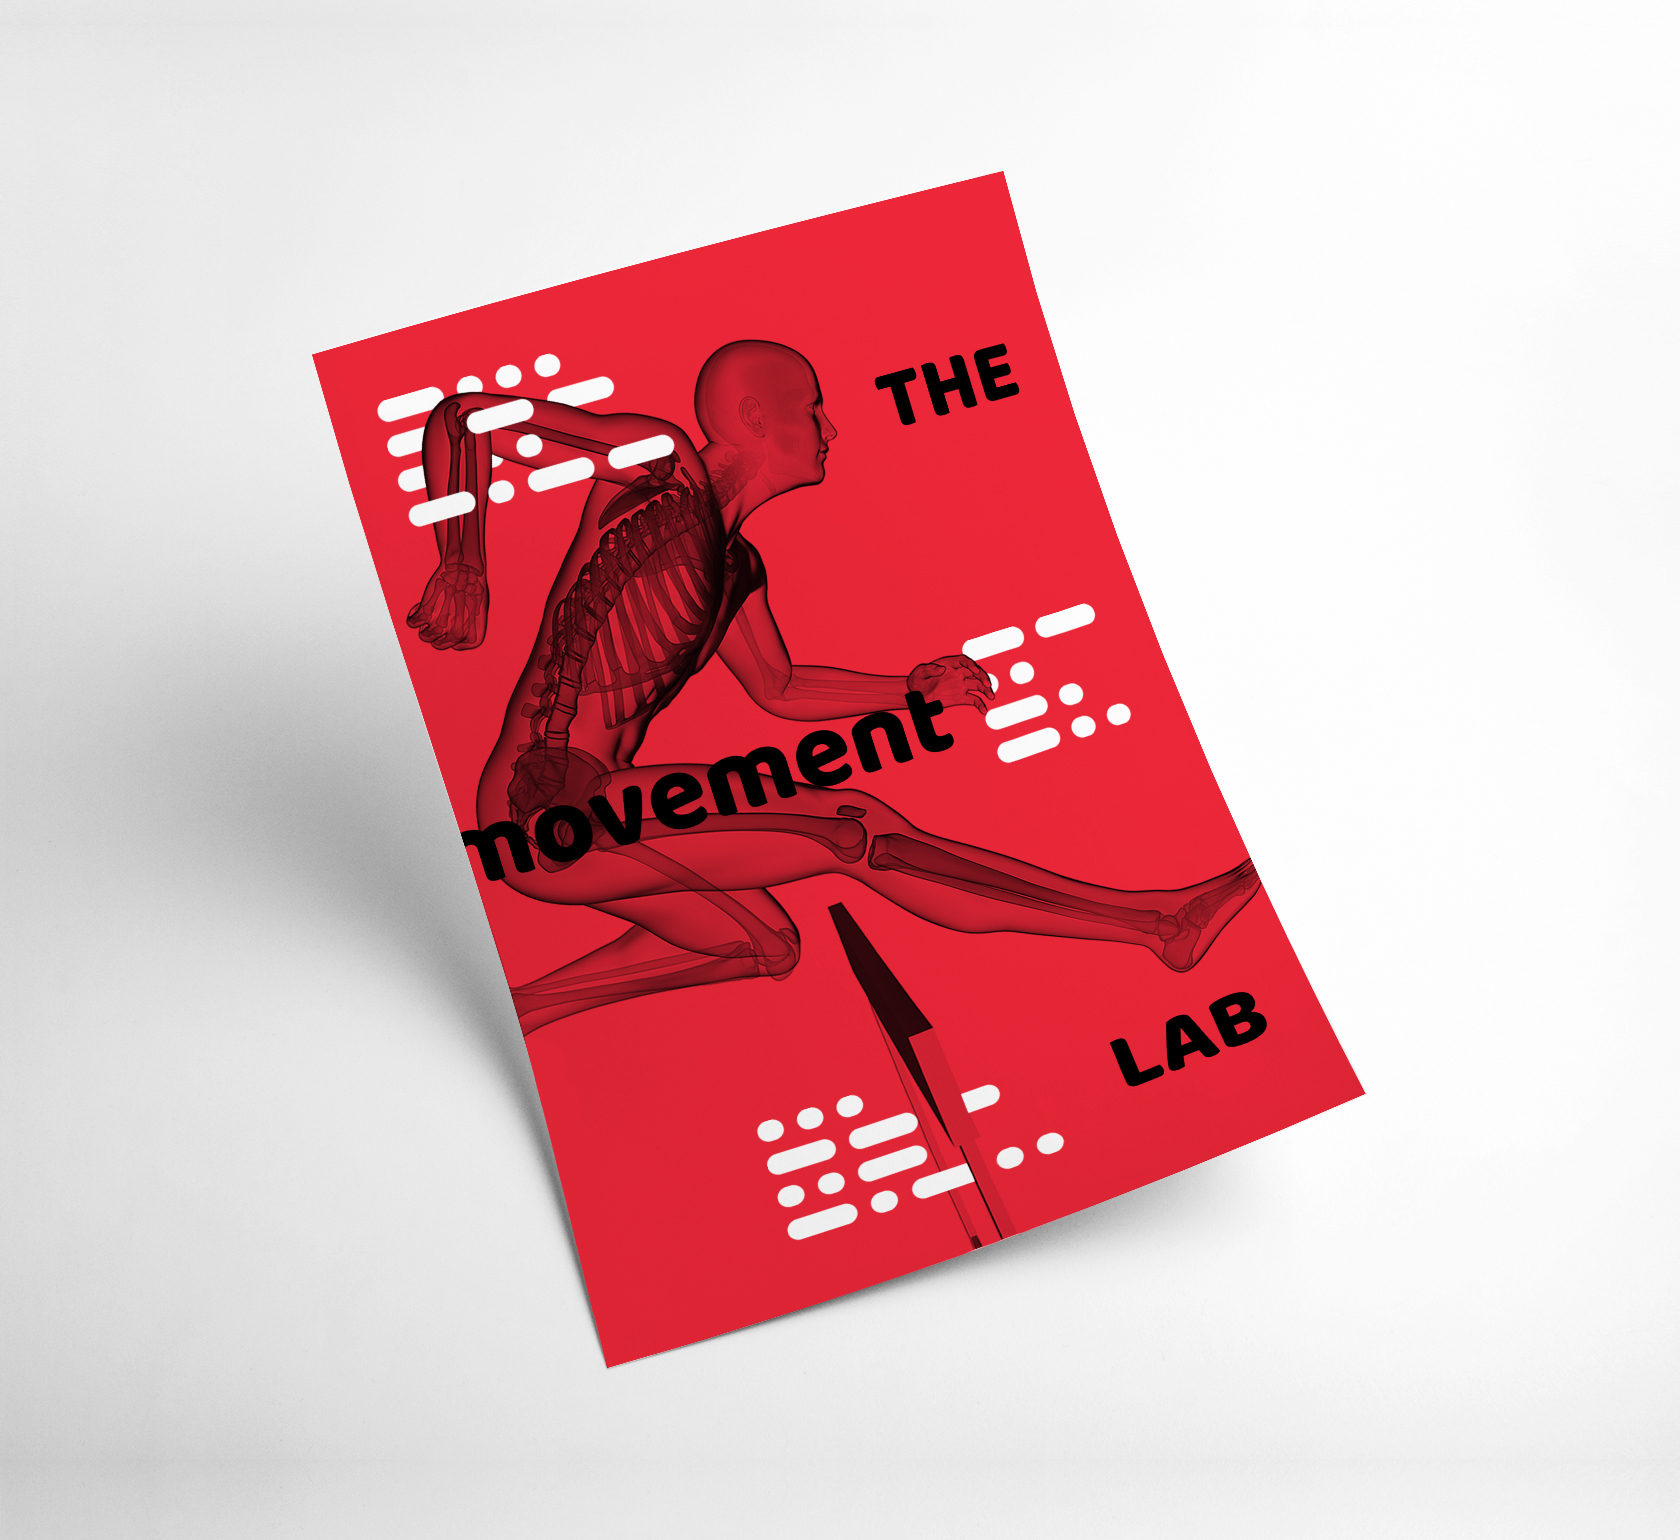 The Movement Lab Flyer Design by Furia